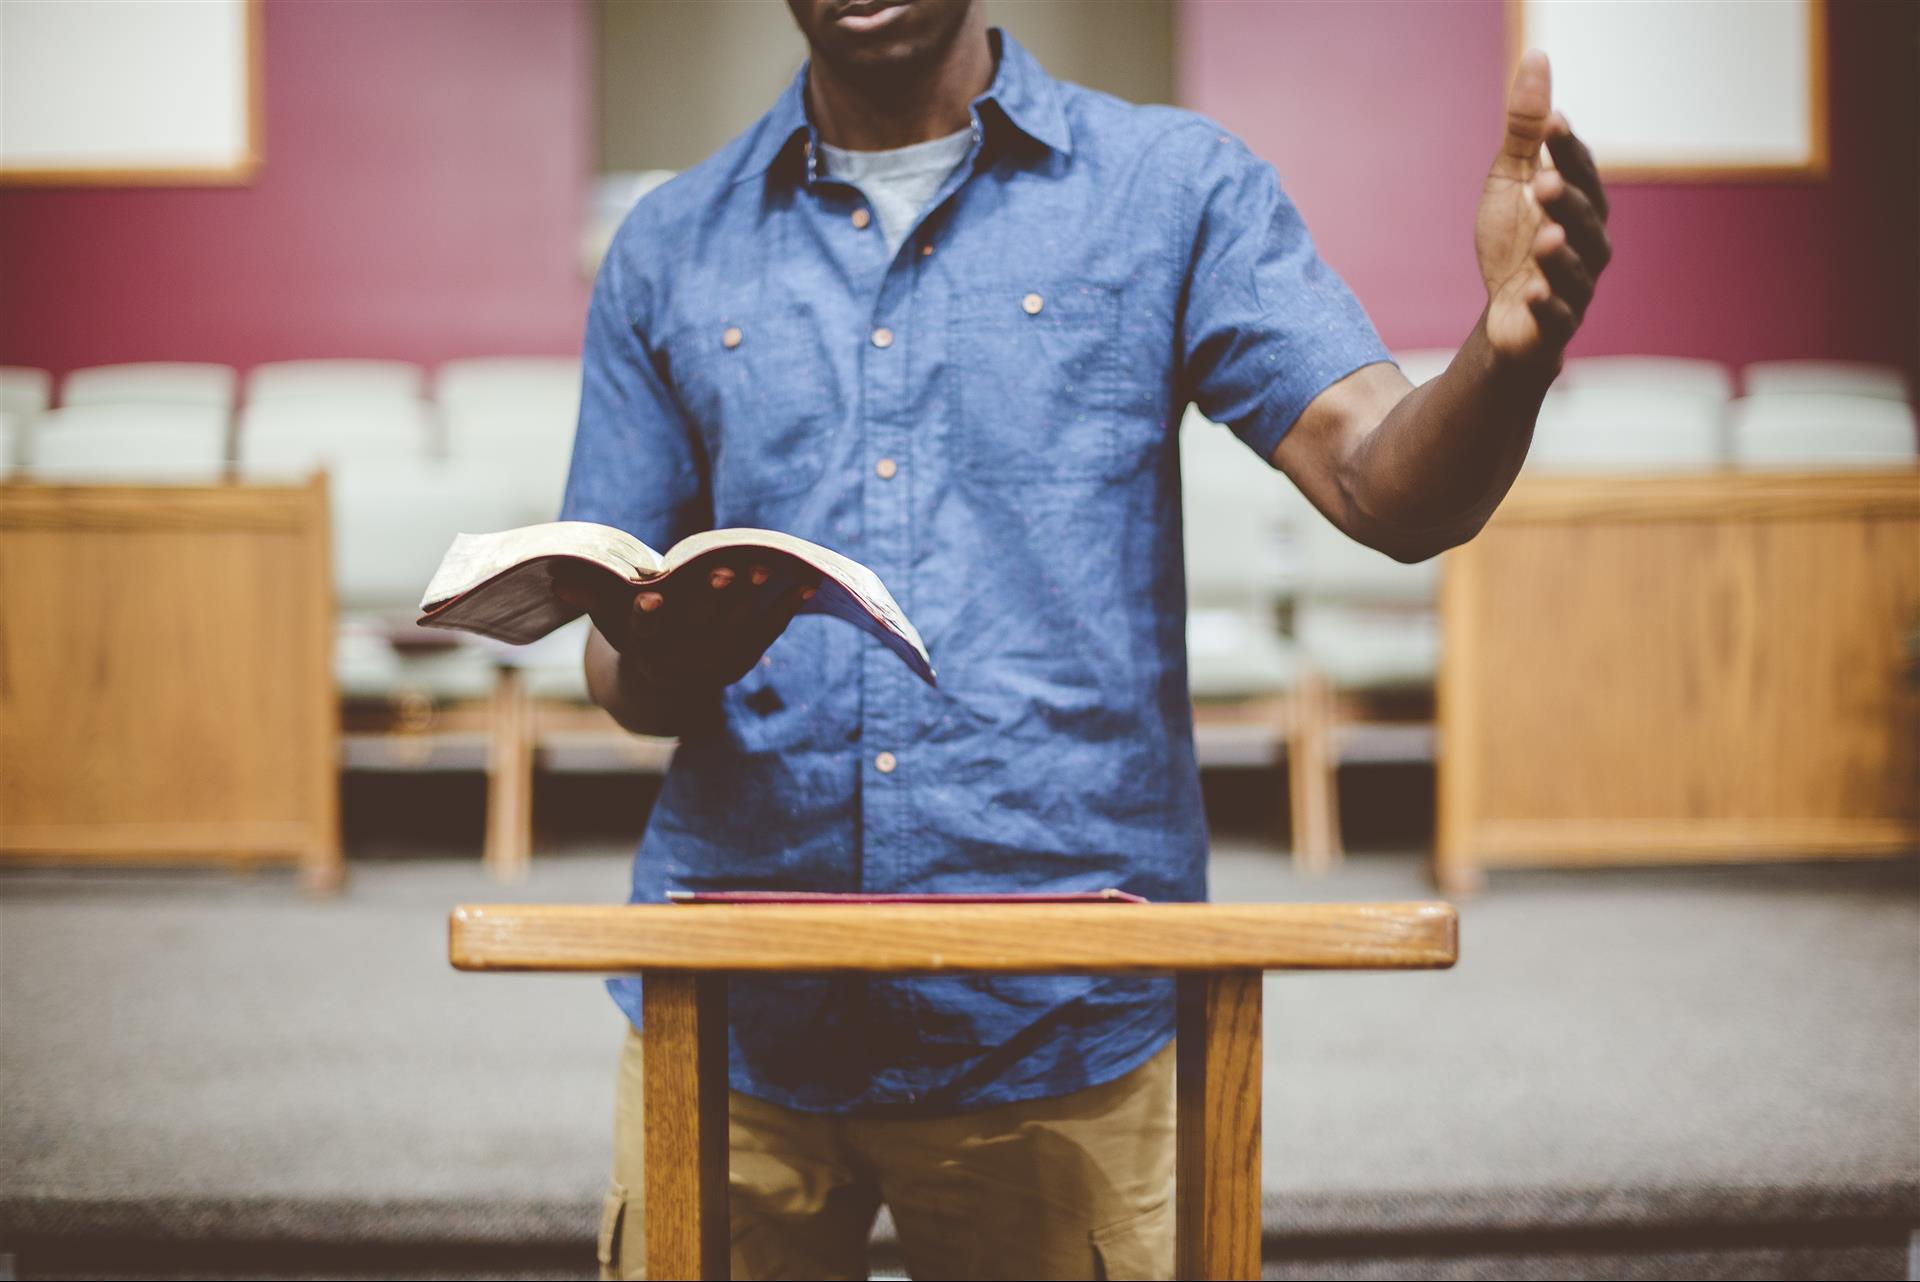 WHAT DOES THE BIBLE SAY ABOUT TEACHING FAITH TO OTHERS?